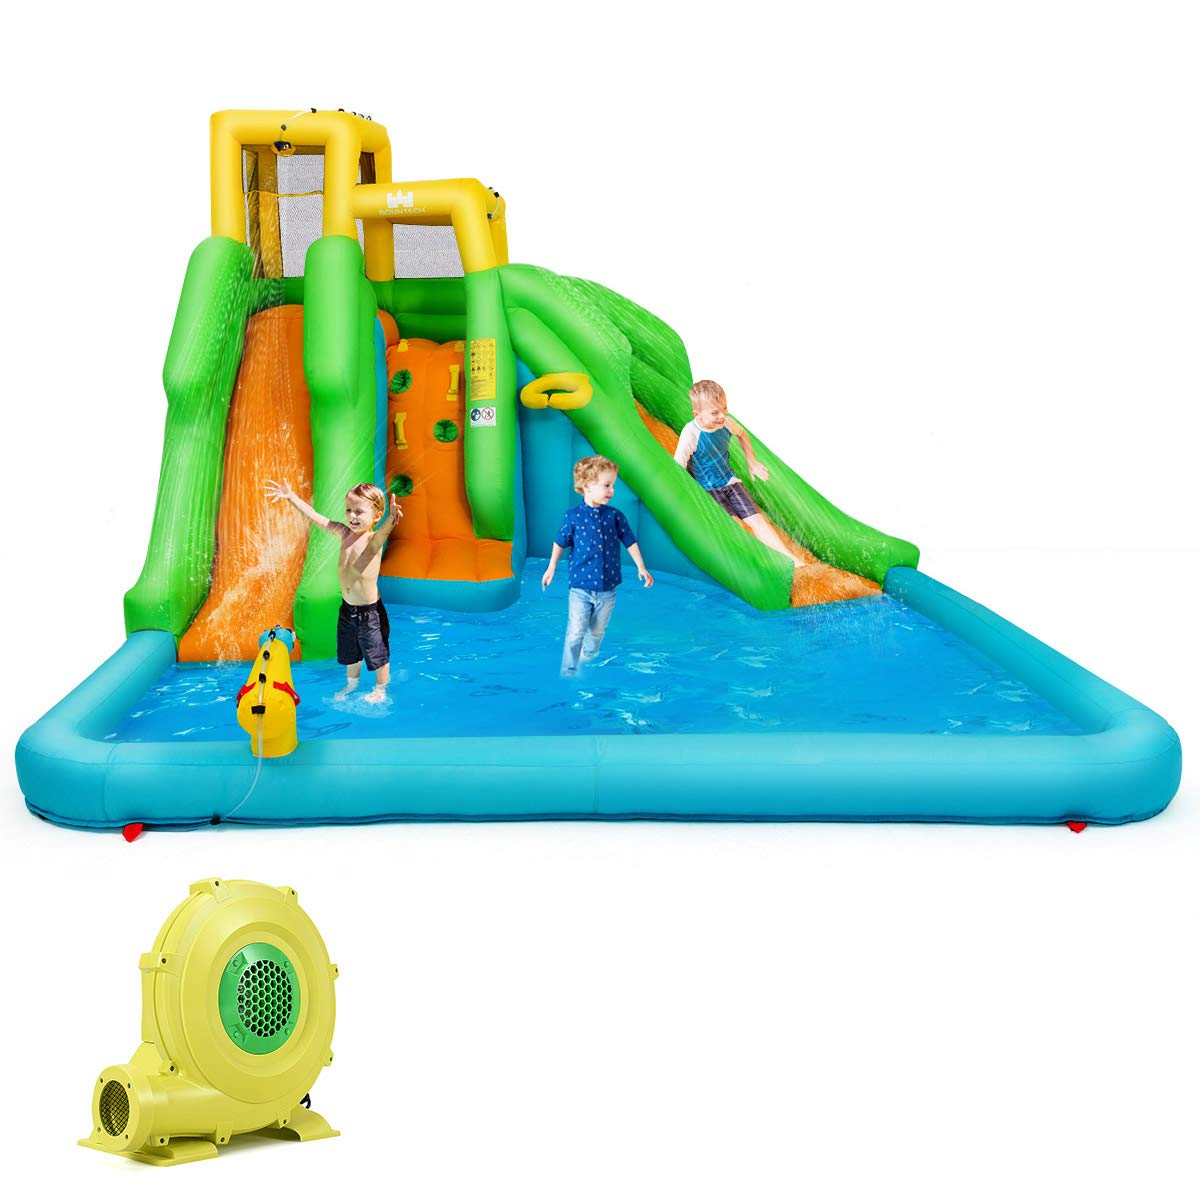 Amazon.com: Costzon - Bounter hinchable para piscina ...